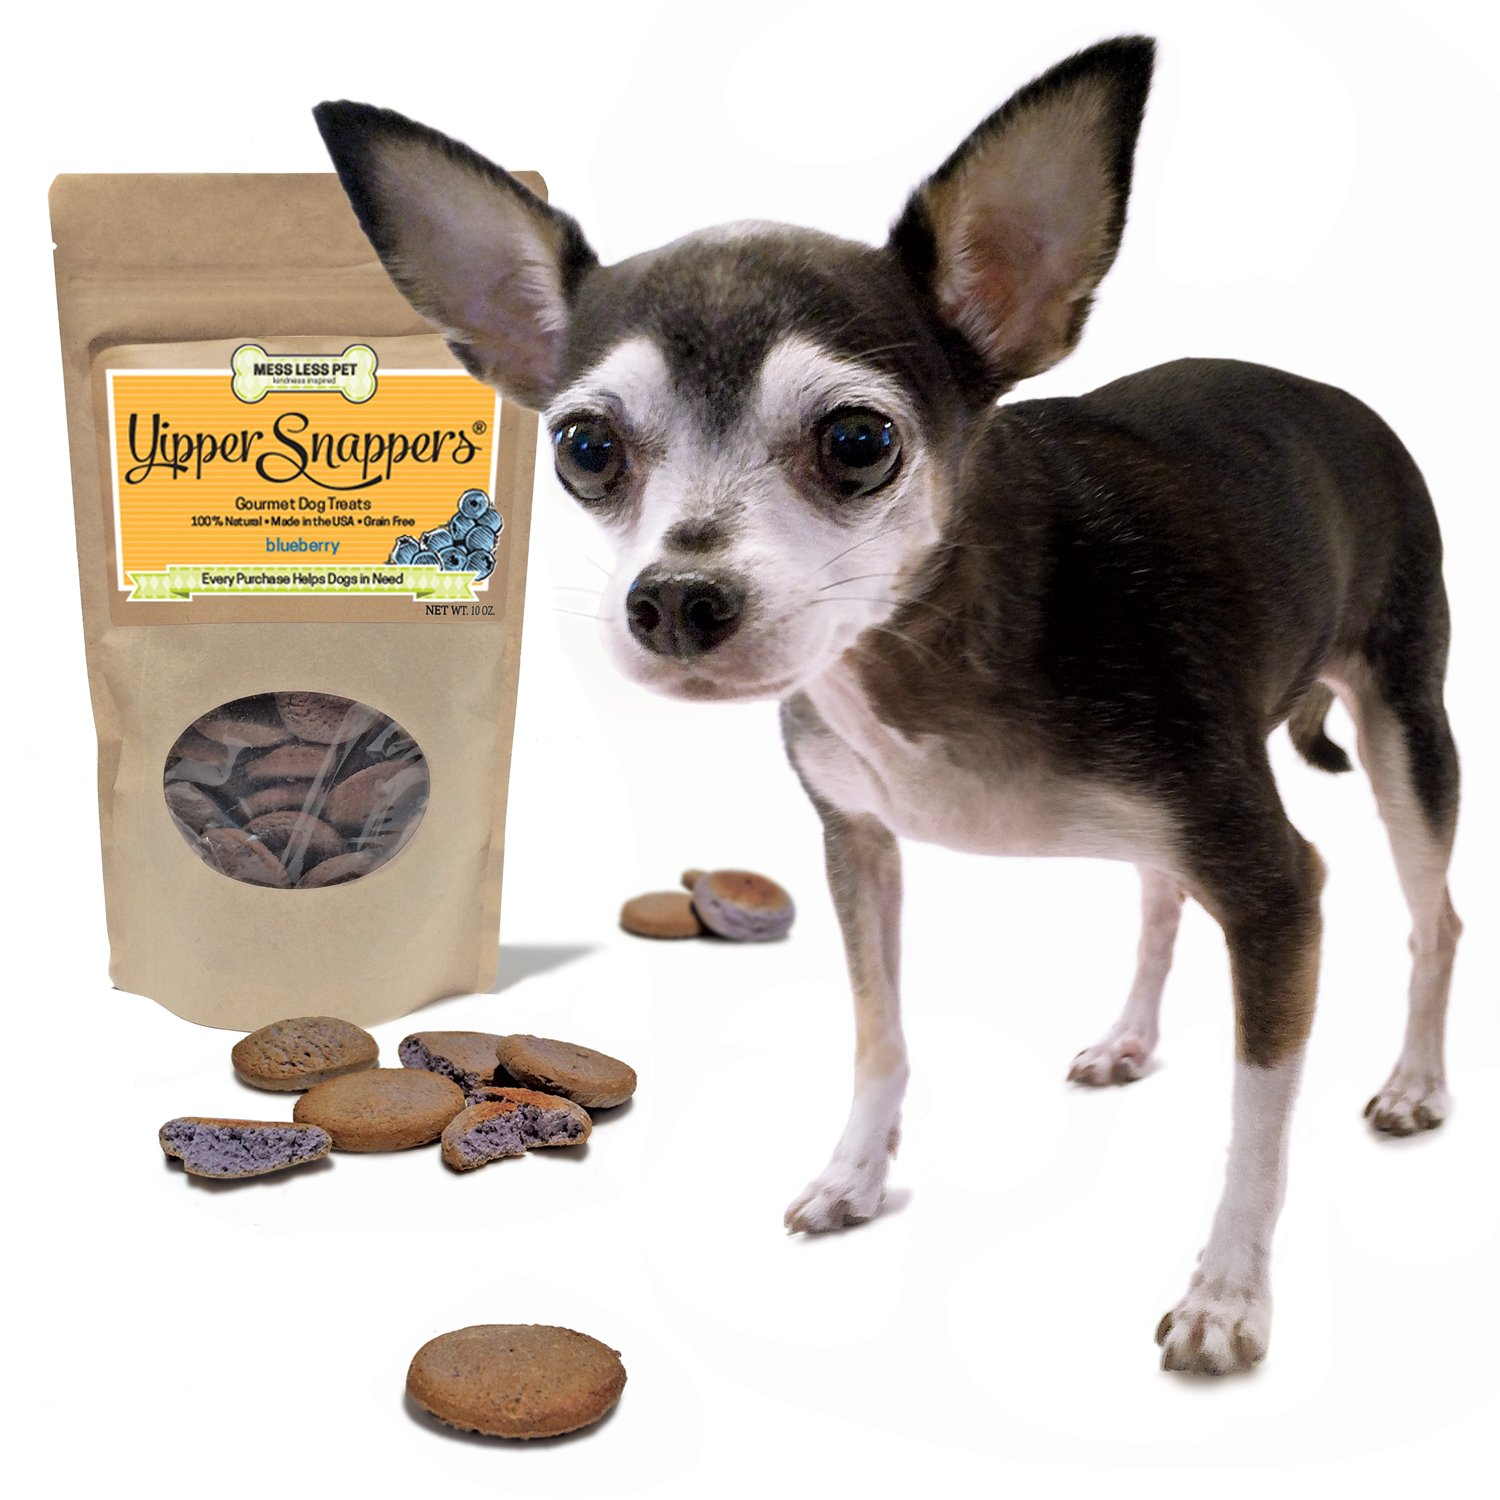 Hypoallergenic Dog Treats Made in USA, Grain Free, 100% All Natural Yummy Yipper Snappers Blueberry Gourmet Dog Treats, Biscuits Help Reduce Allergies and Cleans Teeth